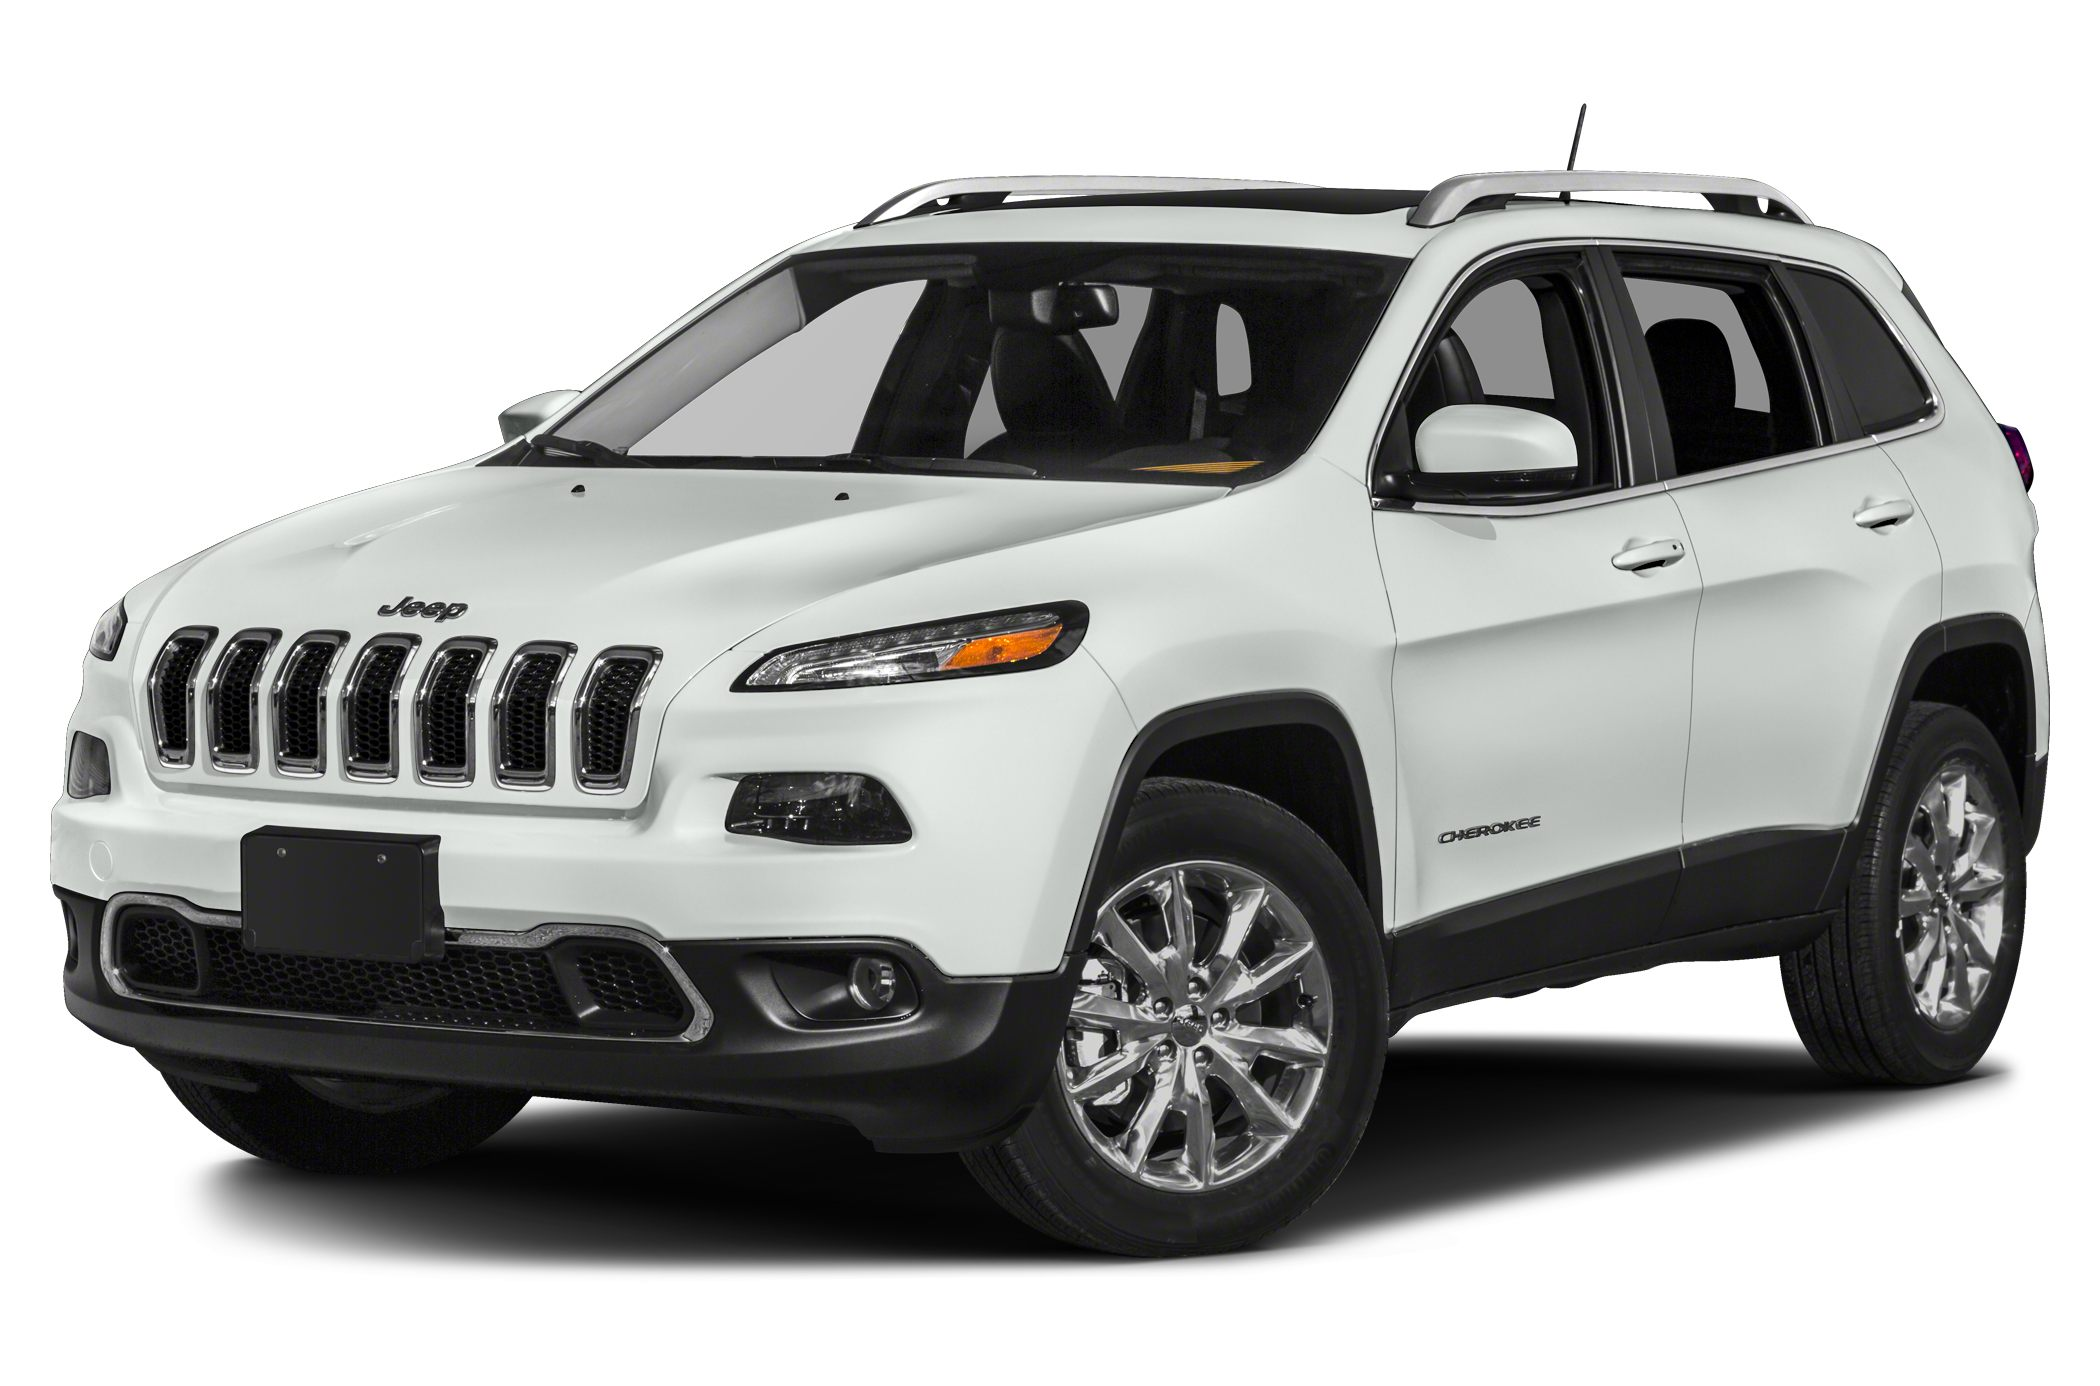 2018 Jeep Cherokee Limited 4dr 4x4